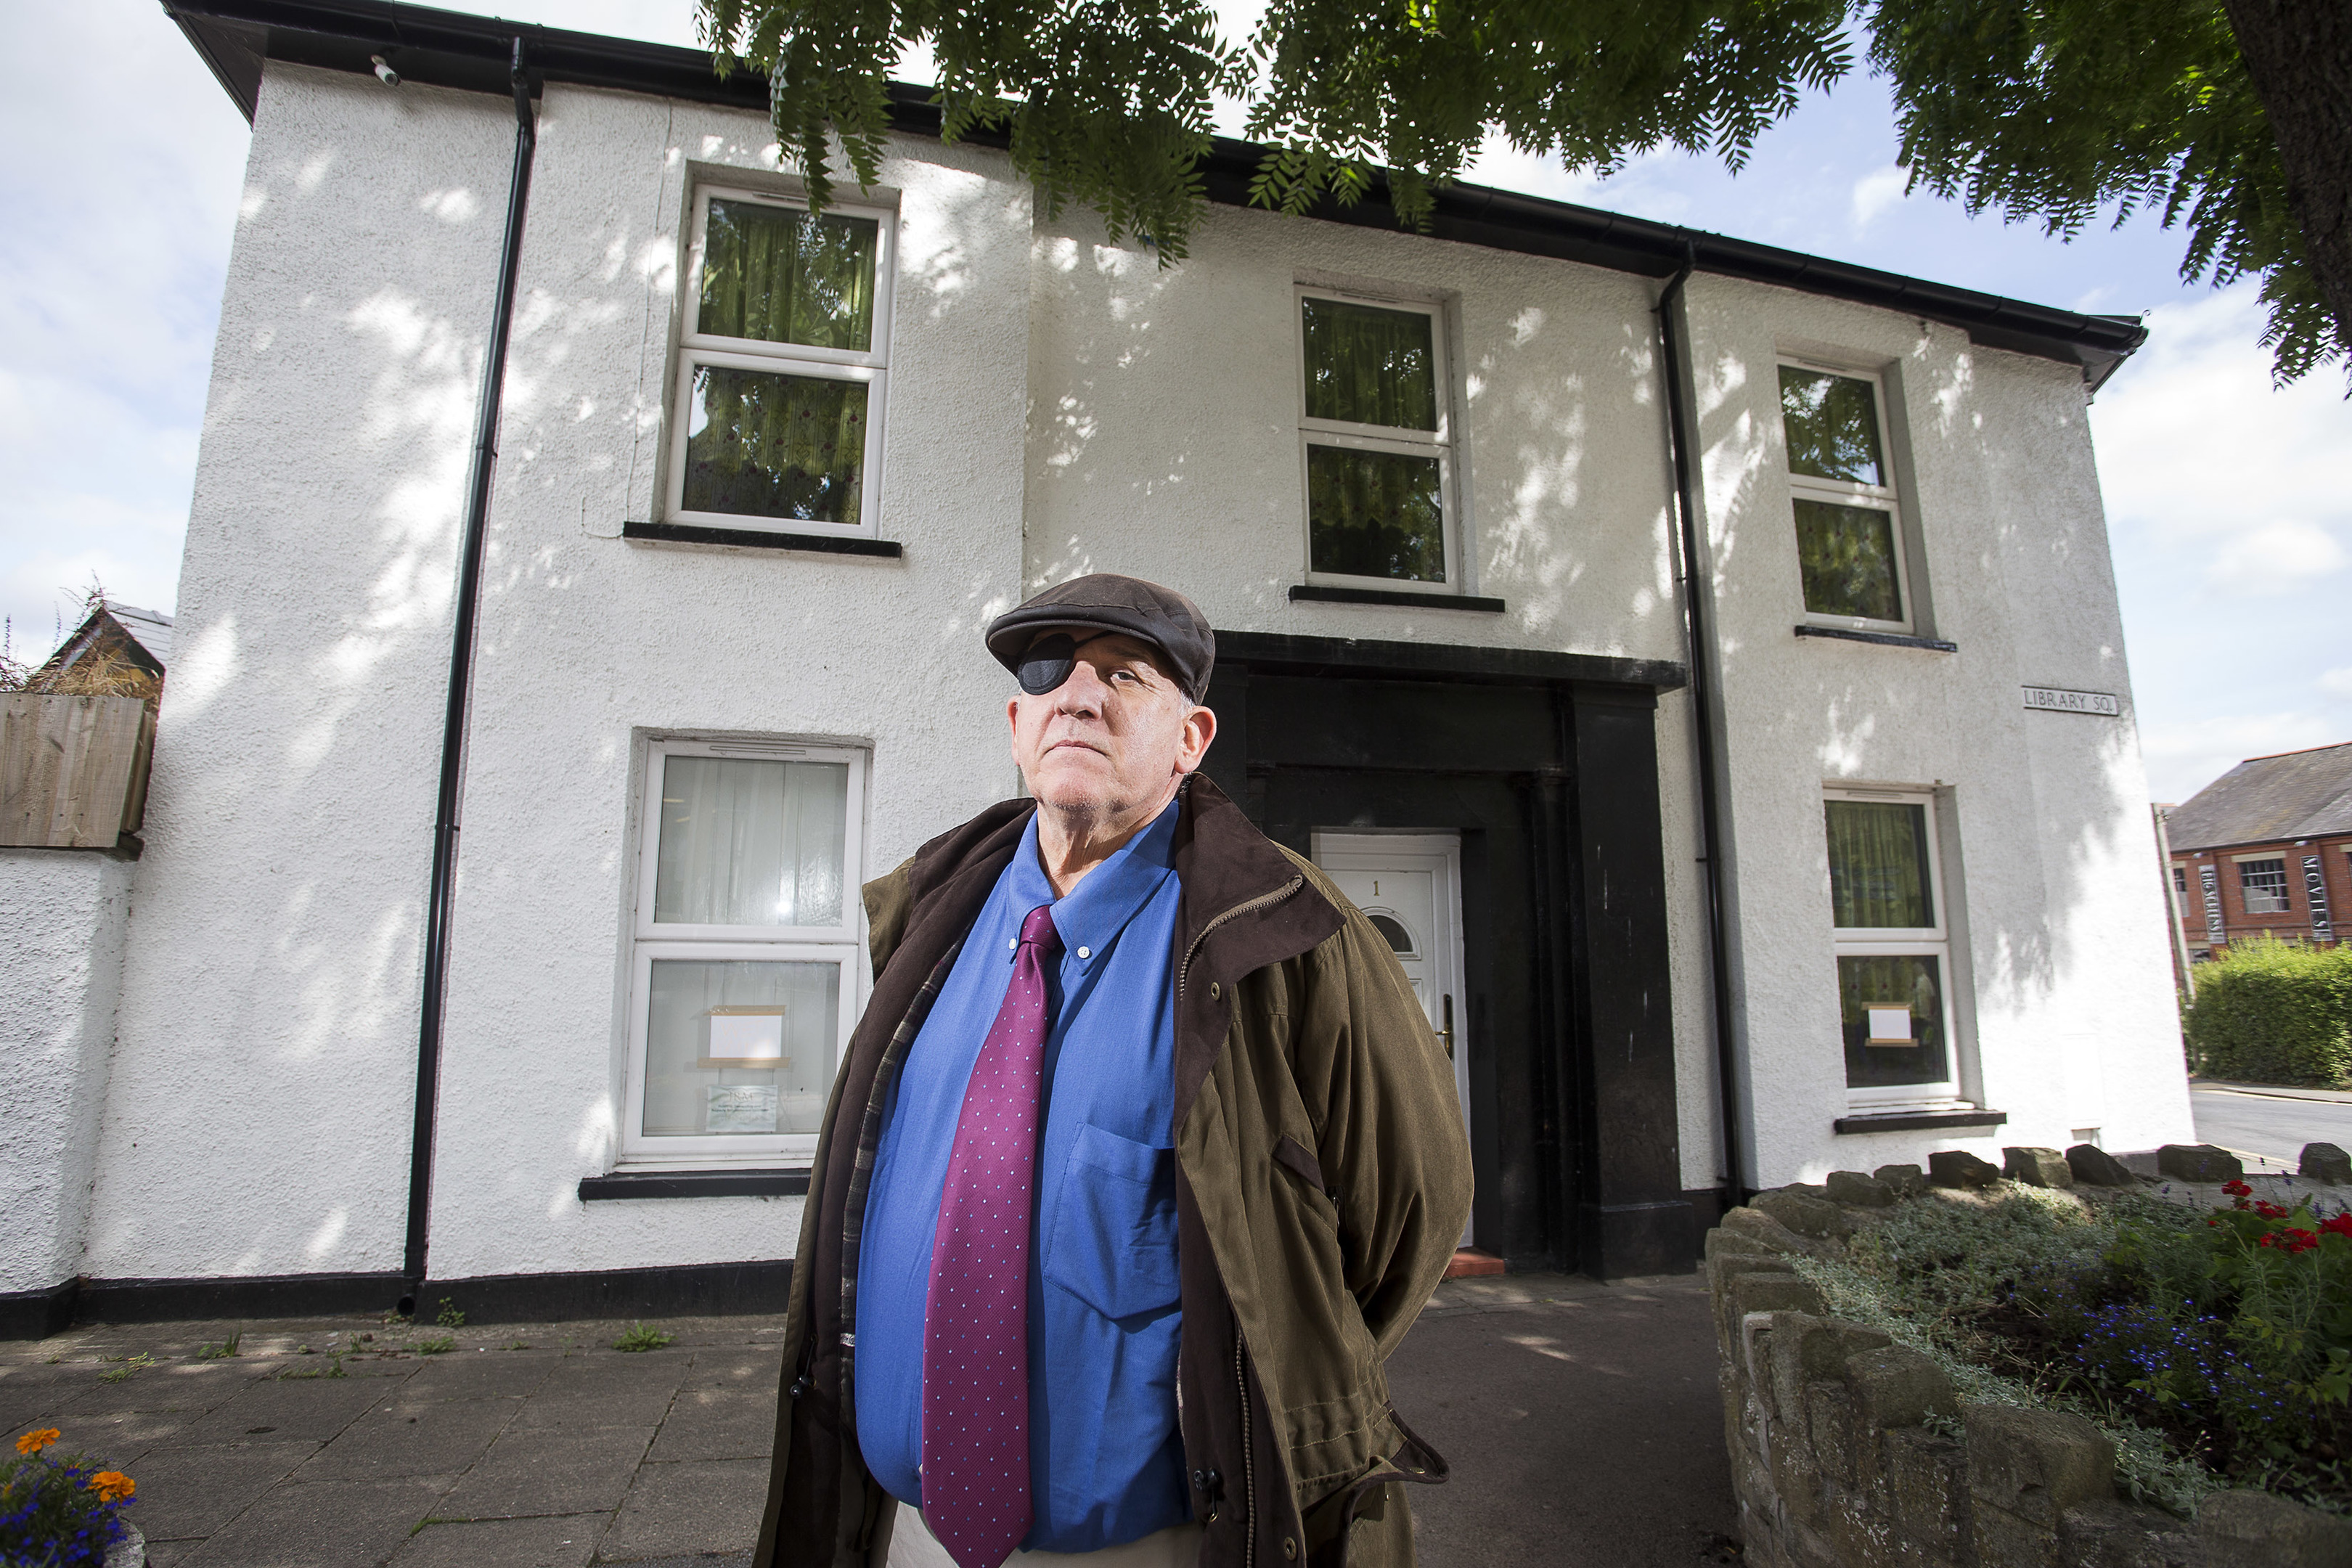 Irvine Gibson's home was damaged by fire with his medals destroyed (Chris Fairweather/Huw Evans)